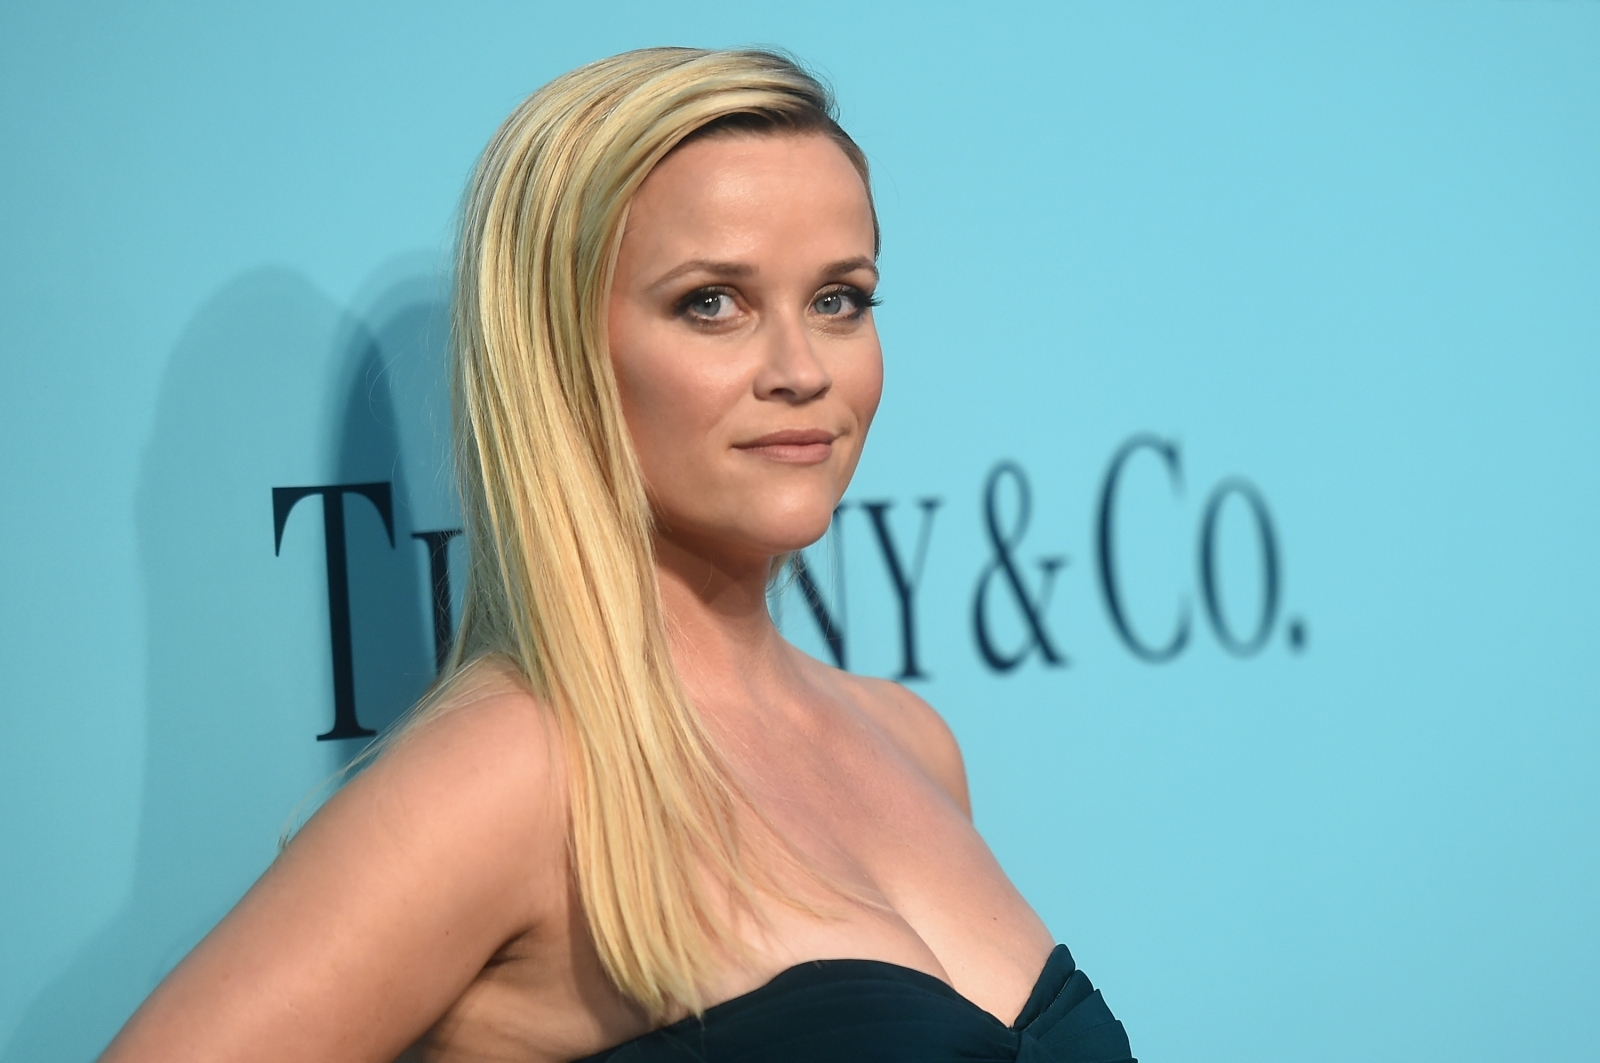 Reese Witherspoon: How Mindy Kaling Helped Me See My White Privilege